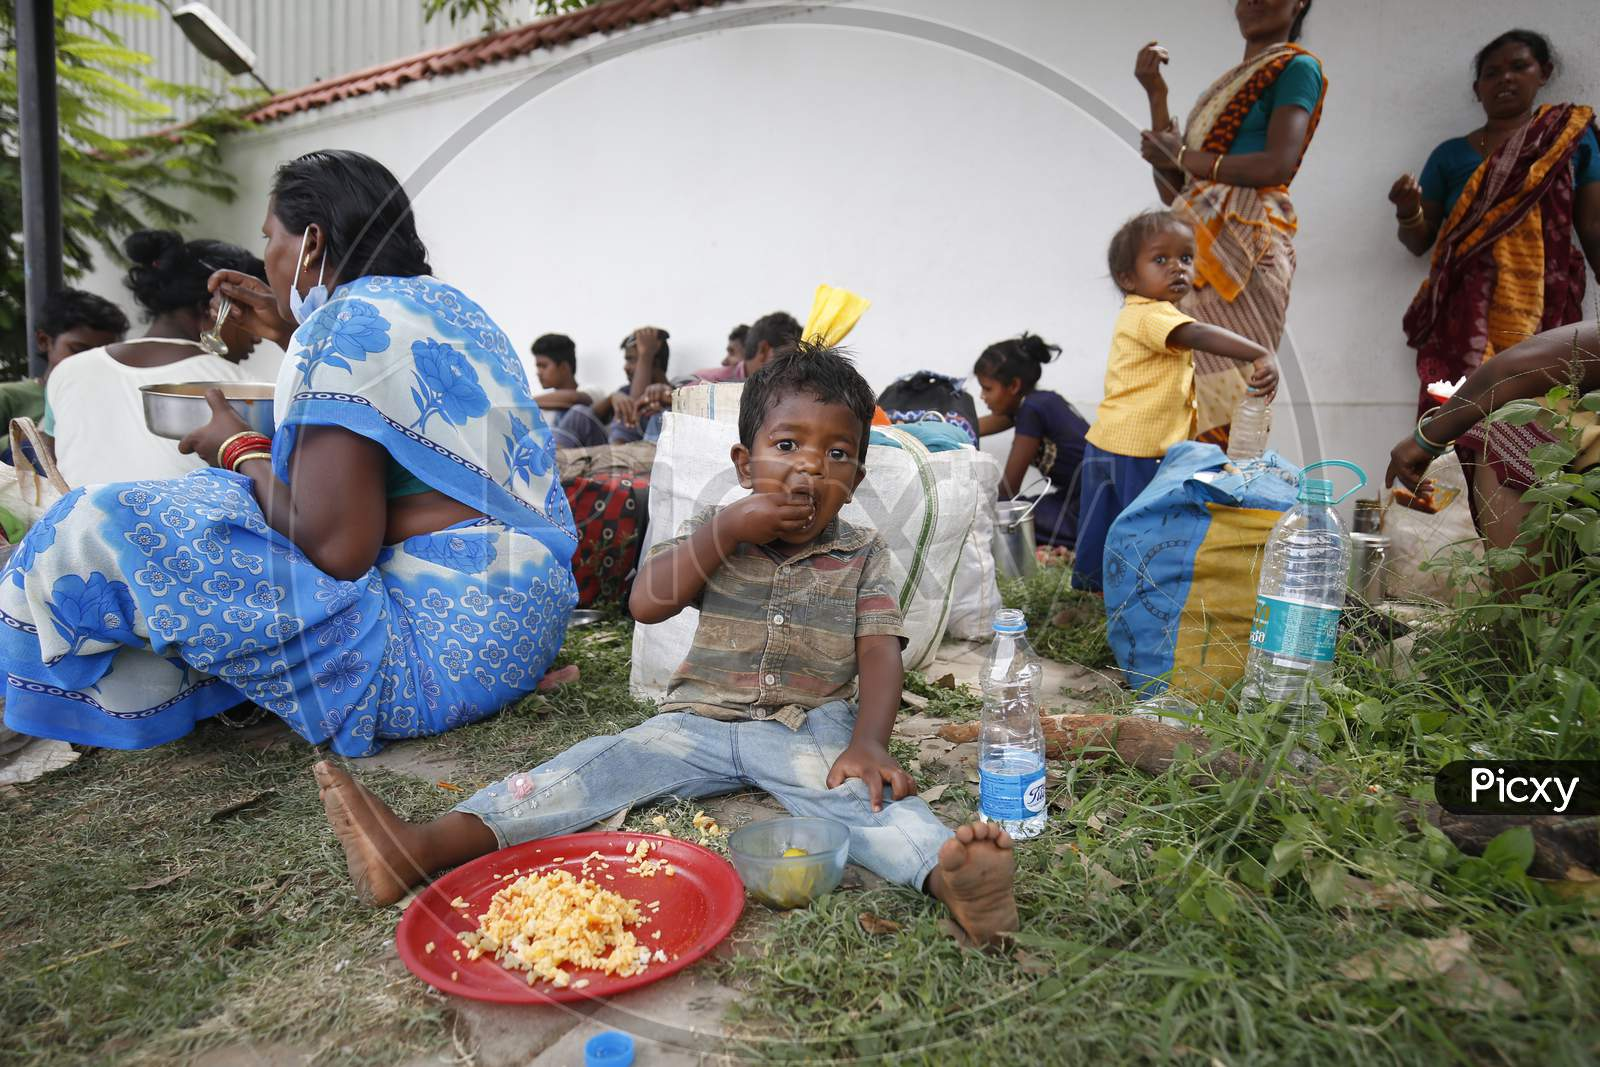 The child of a migrant workers eats his lunch on a pavement before boarding a bus to be taken to a government-arranged train to his destination after the state eased lockdown regulations during the extended nationwide lockdown to prevent the spread of coronavirus (Covid-19) in Bangalore, India.